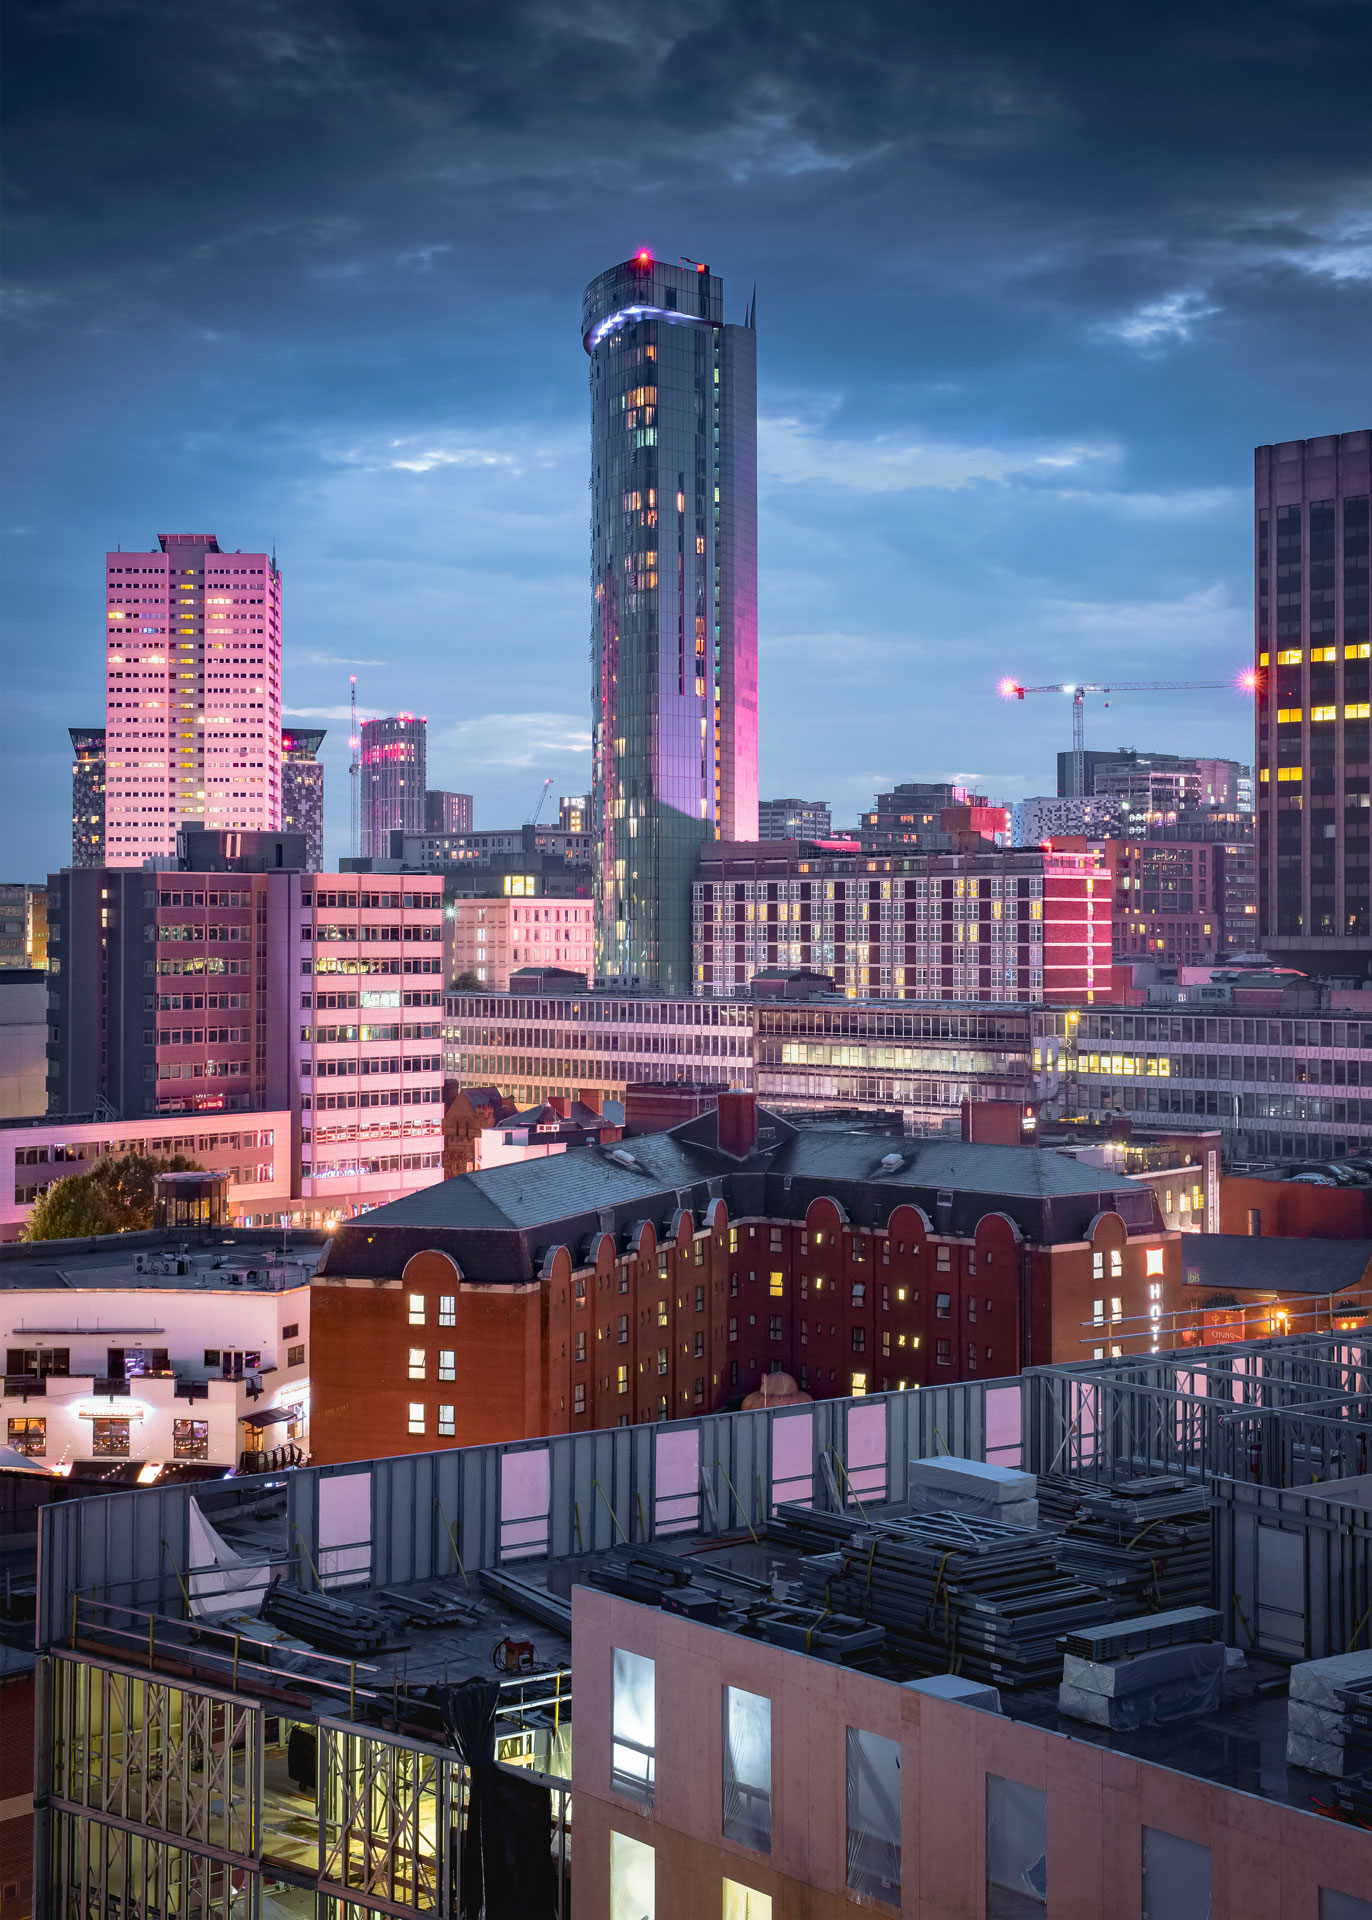 Across the rooftops on Birmingham towards the Raddison Blu hotel. City Photography. Urban.